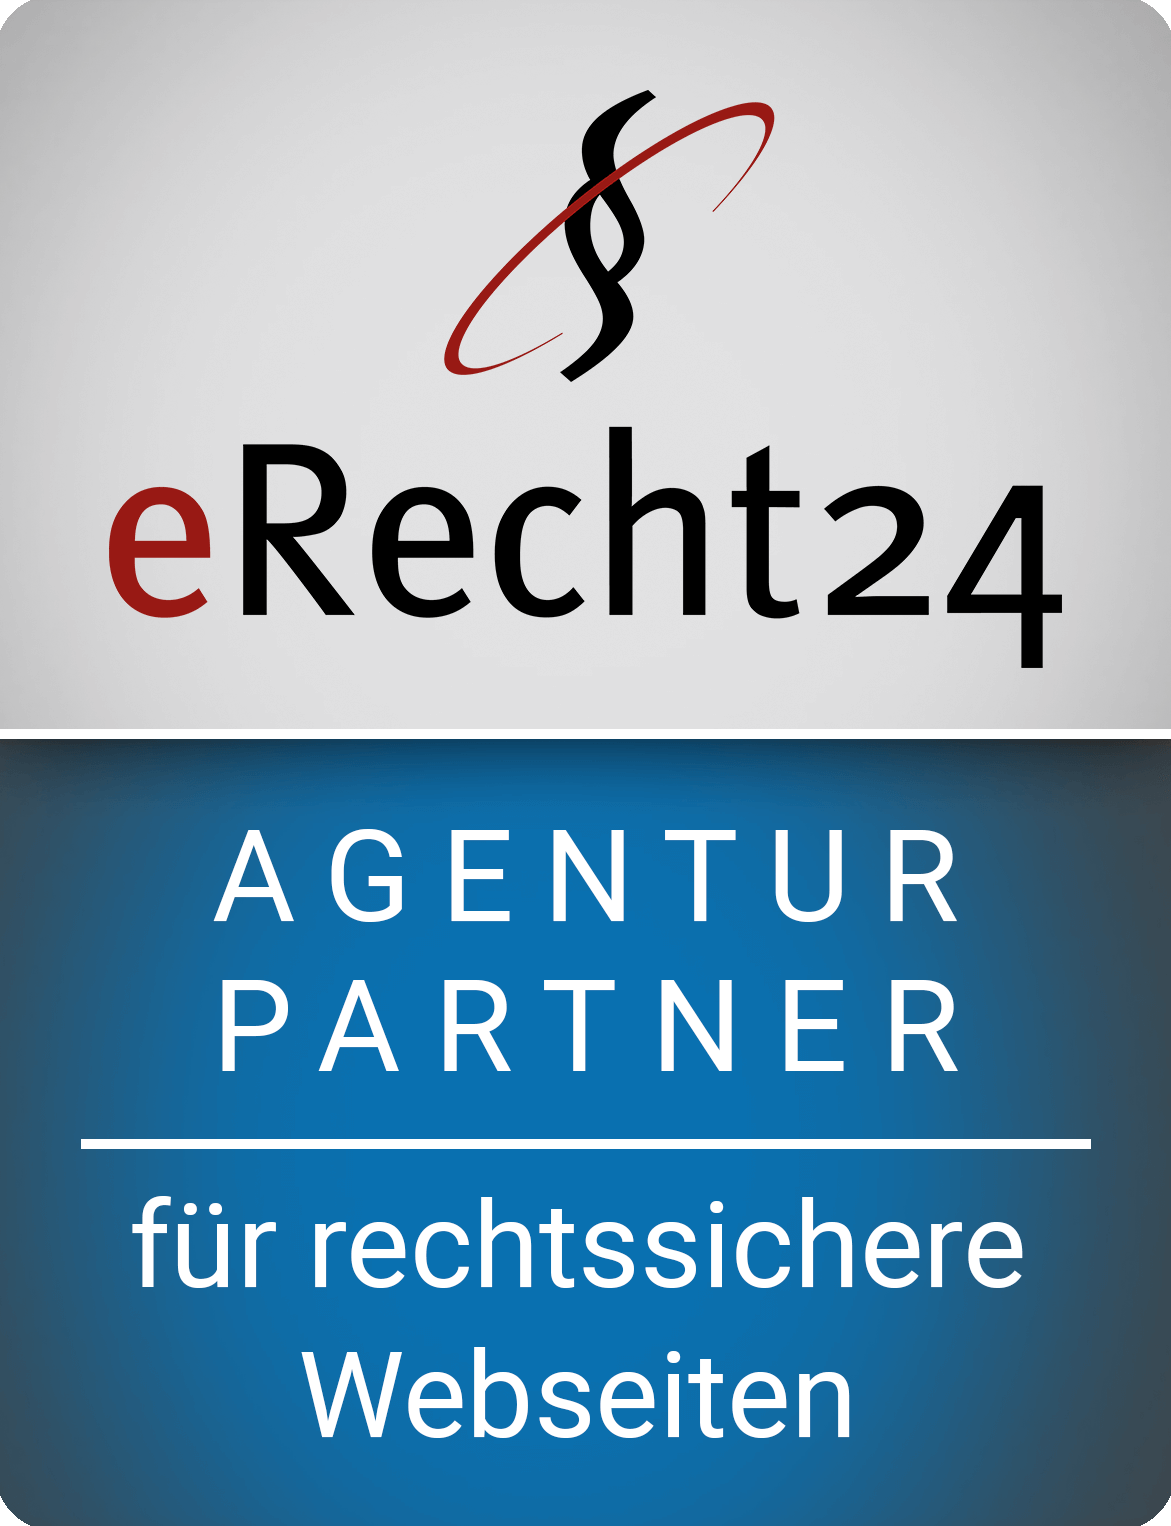 Wir sind Agenturpartner von eRecht24 erecht24 siegel agenturpartner blau gross  Update it erecht24 siegel agenturpartner blau gross